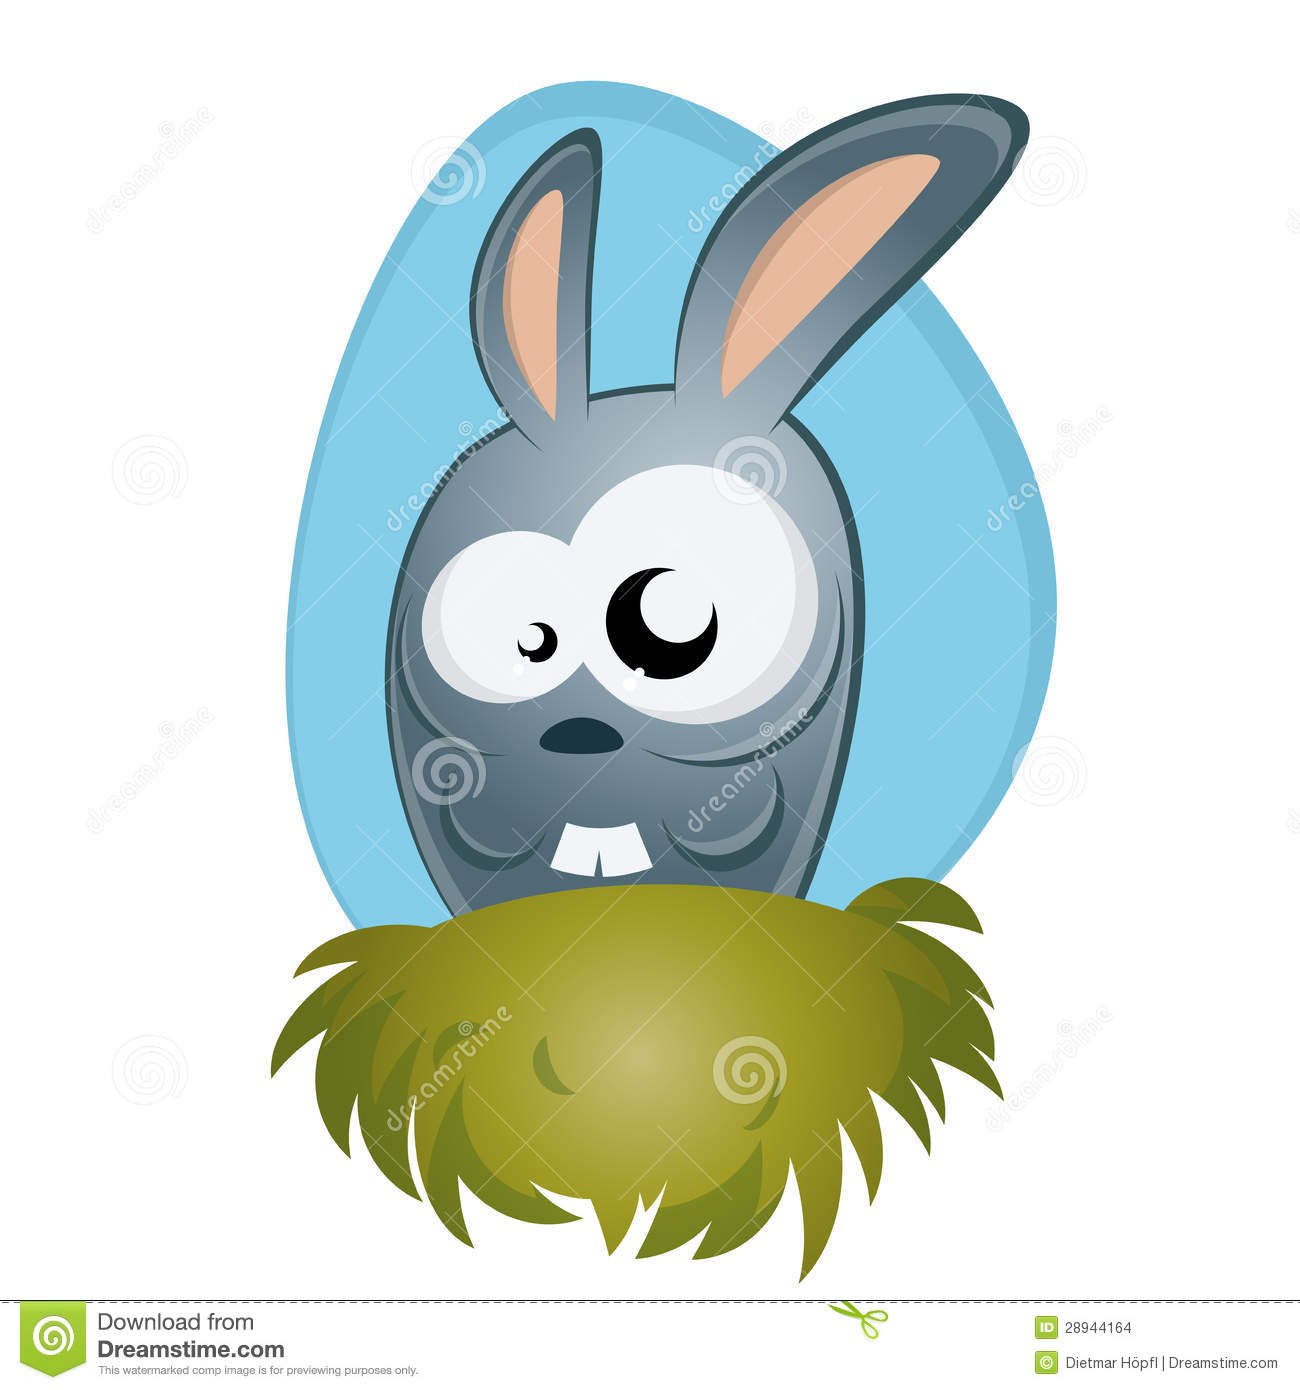 Funny Cartoon Bunny Stock Images - Image: 28944164